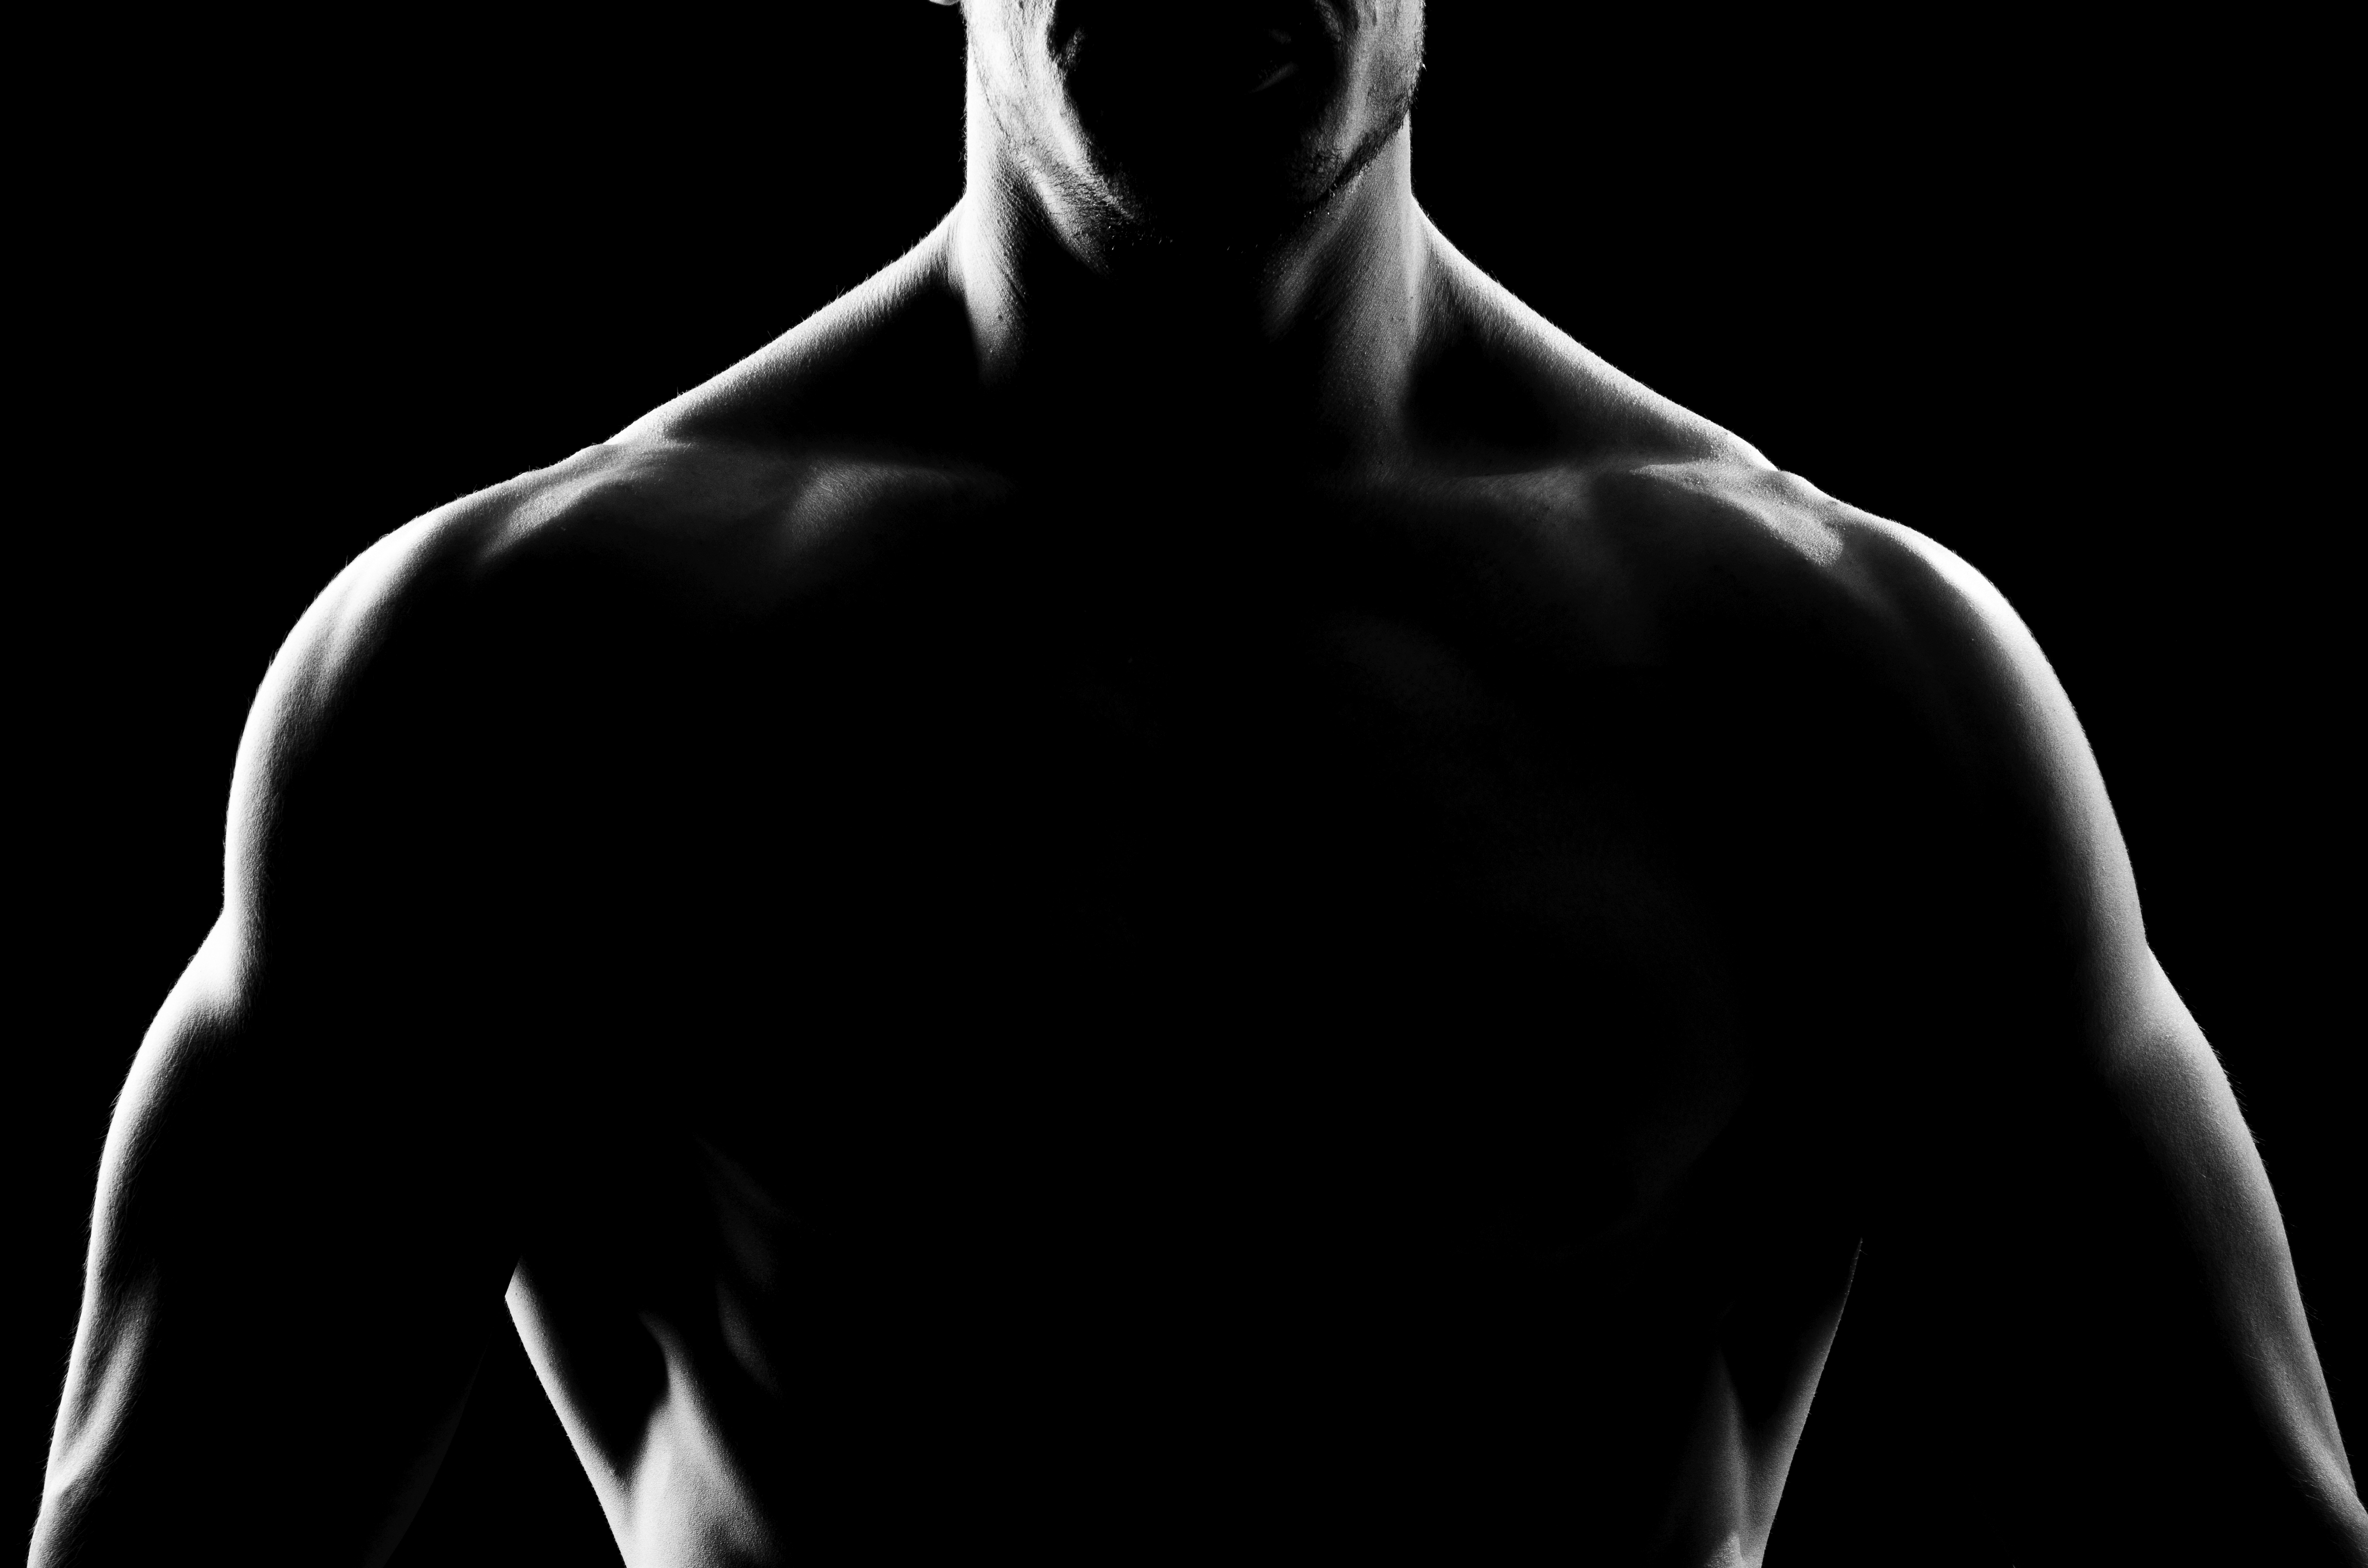 Learn about Men's Physique